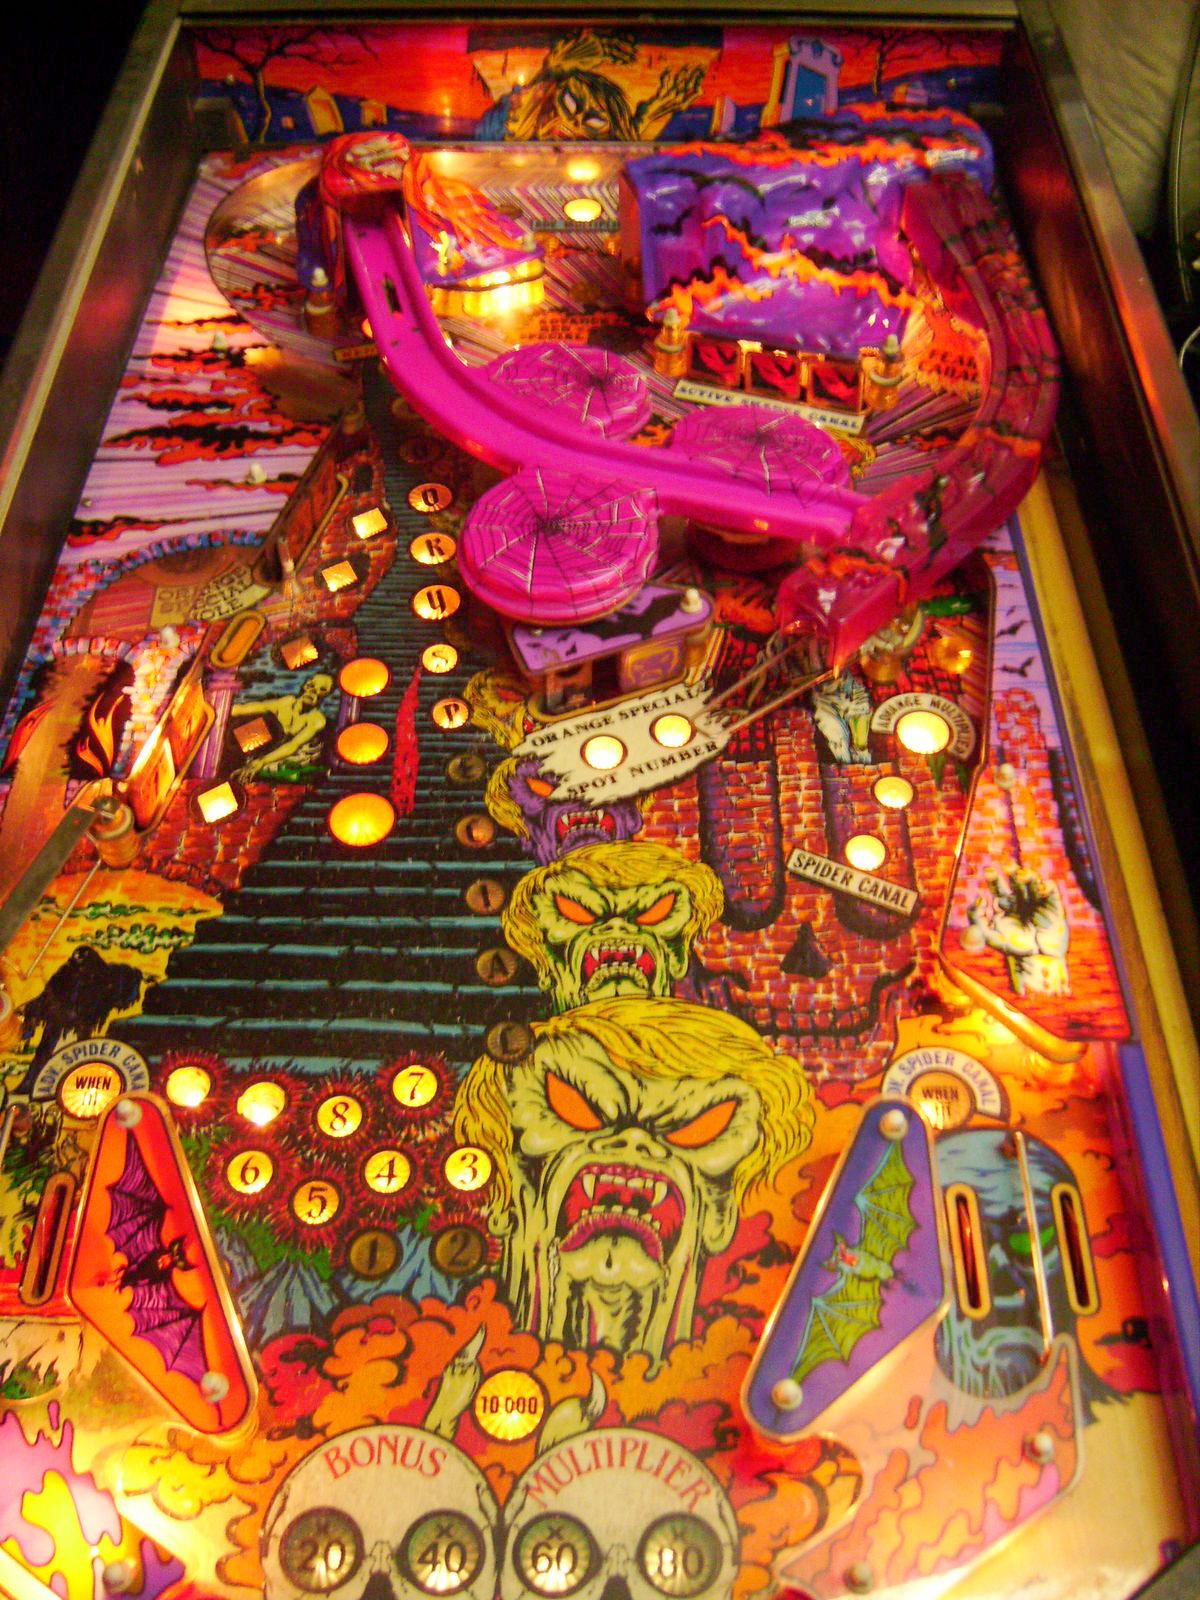 Zaccaria Spooky Pinball Machine 1987 Coin Operated Arcade Game